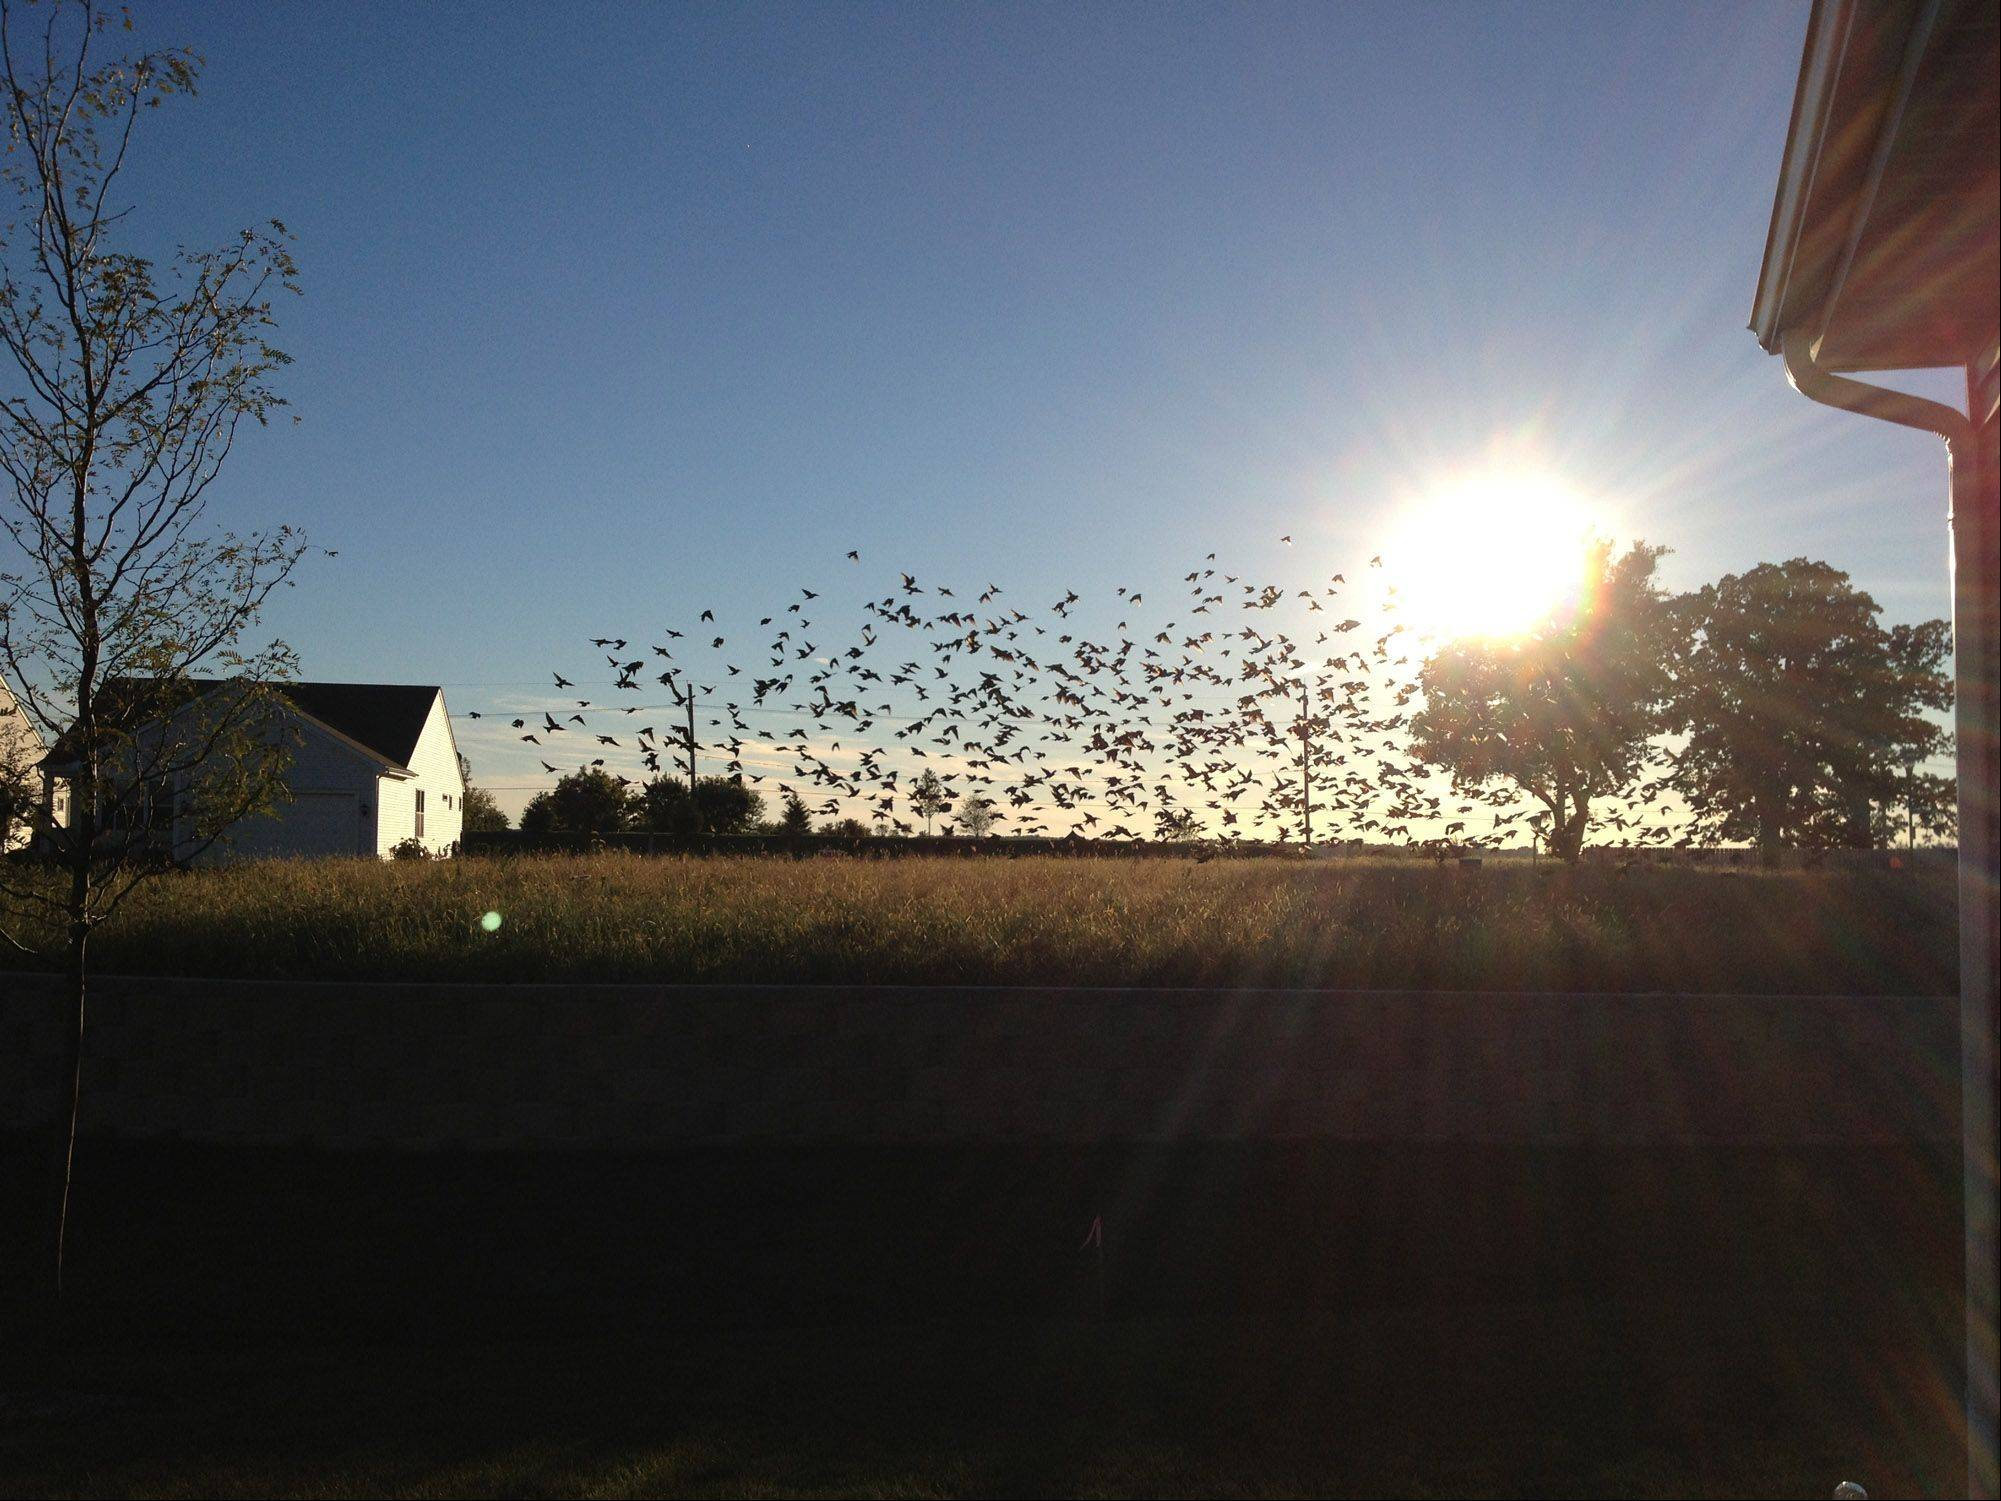 This photo was taken in September of 2013 from my back patio door in our newly constructed home in Pingree Grove. The birds taking flight against the sunset back ground created a great photo op.